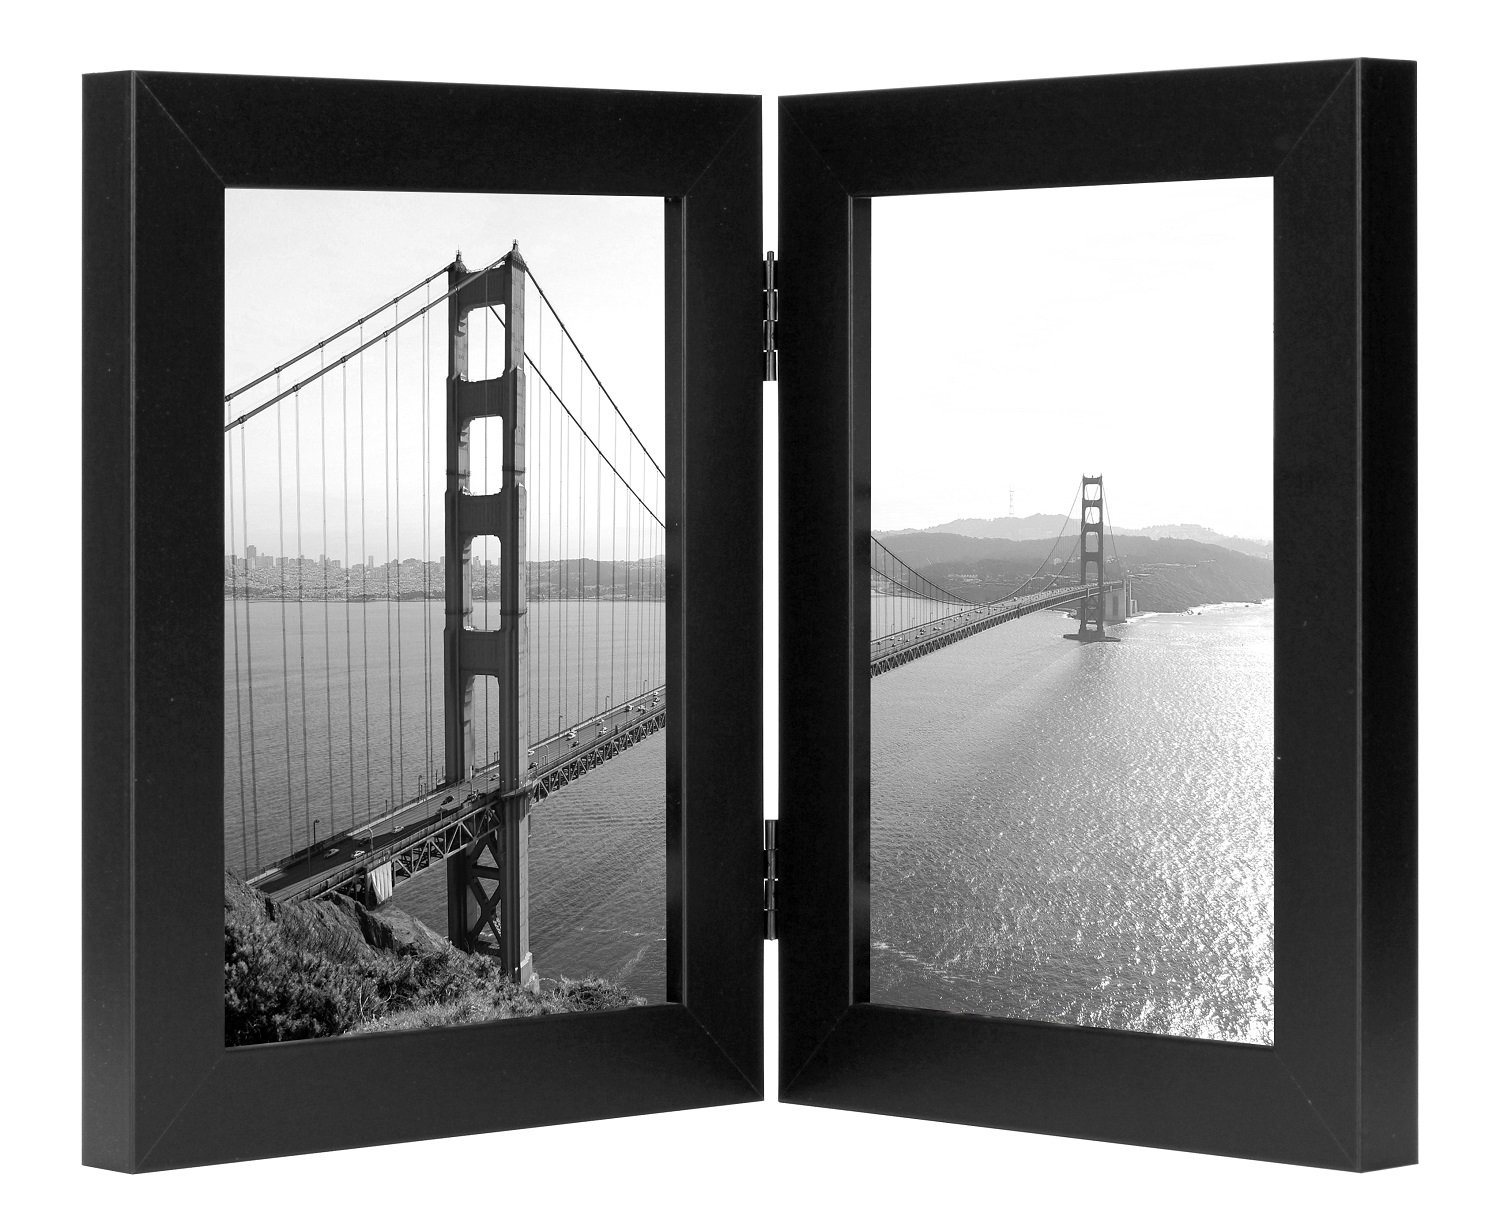 Frametory, 5x7 Inch Hinged Picture Frame - Displays Two 5x7 Inch Pictures, Stands Vertically on Desktop or Table Top (5x7 Double, Black) by Frametory